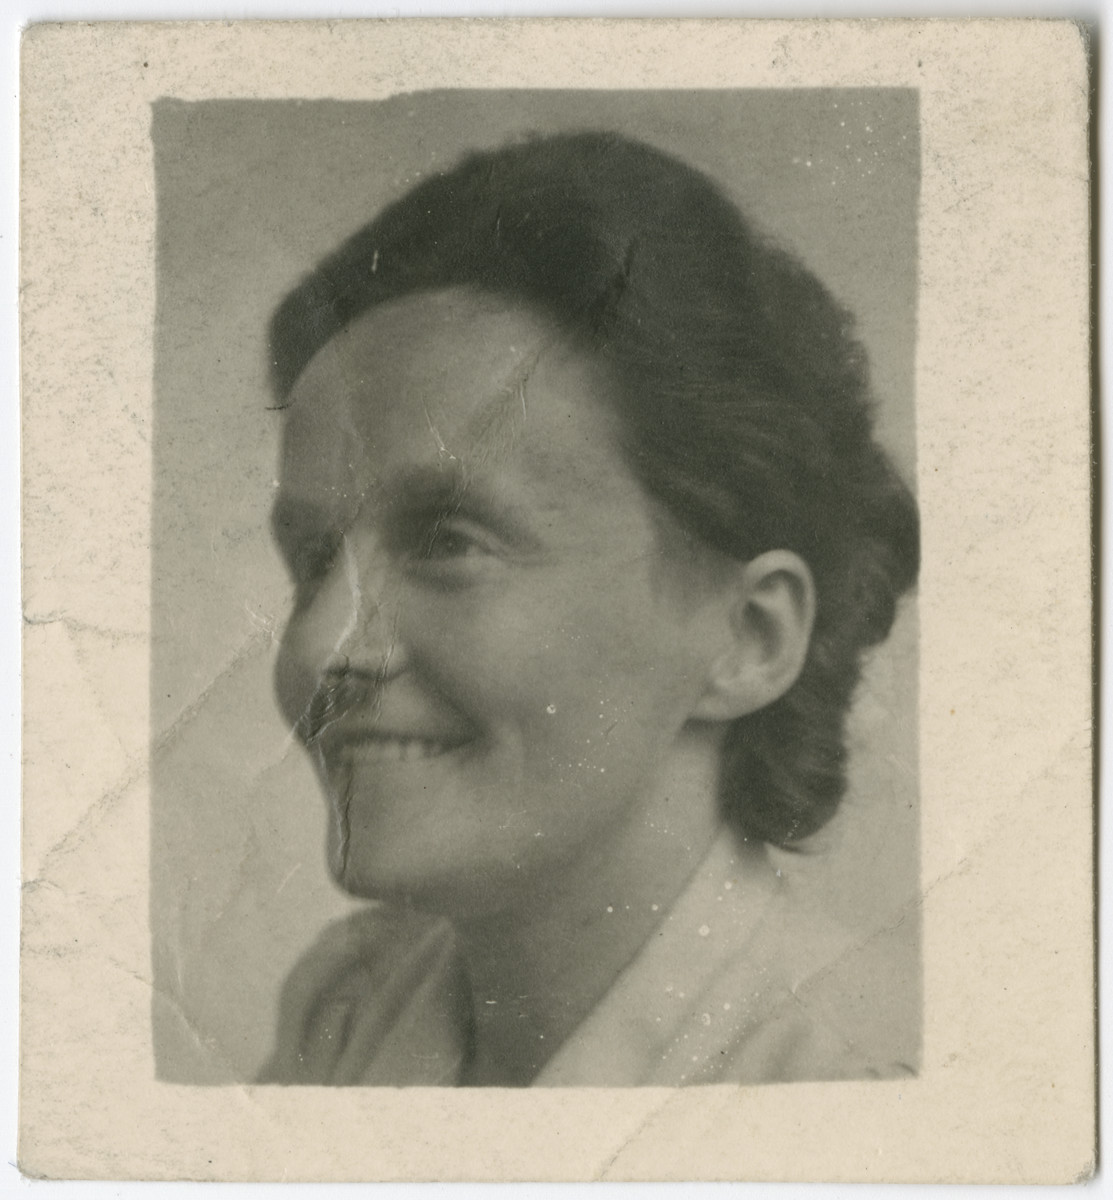 Portrait of Anne Onderweegs used on her false ID card.   Anne and Dick Onderweegs were members of the resistance in the Netherlands, where they assisted Jews in hiding. These IDs were created to help them escape detection after they were denounced and sought for arrest. The Onderweegs resuced Louis de Groot.